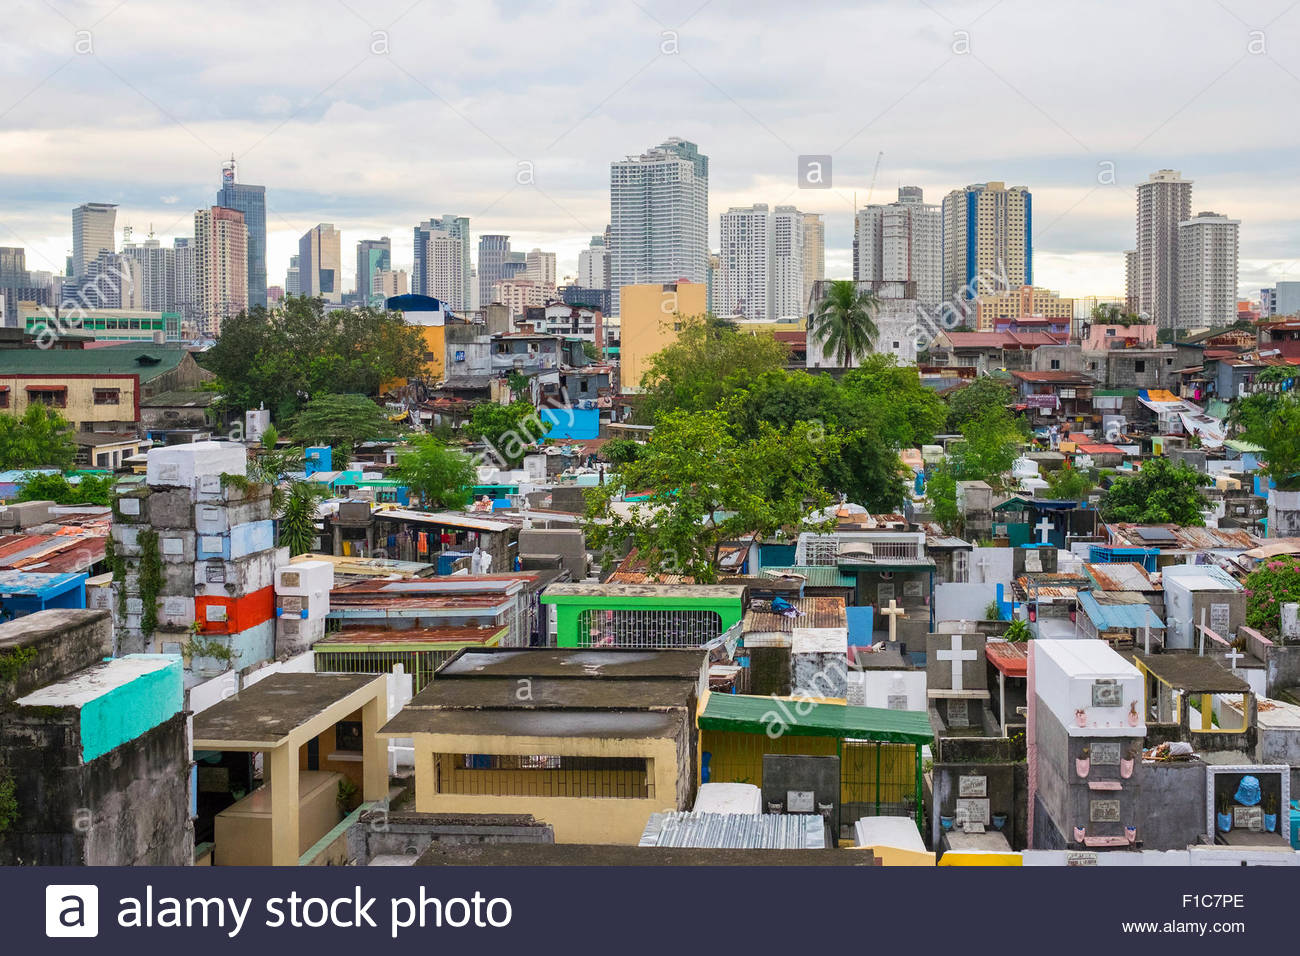 Towers of Makati City financial district above Pasay City Cemetary, Manila, National Capital Region, Philippines - Stock Image